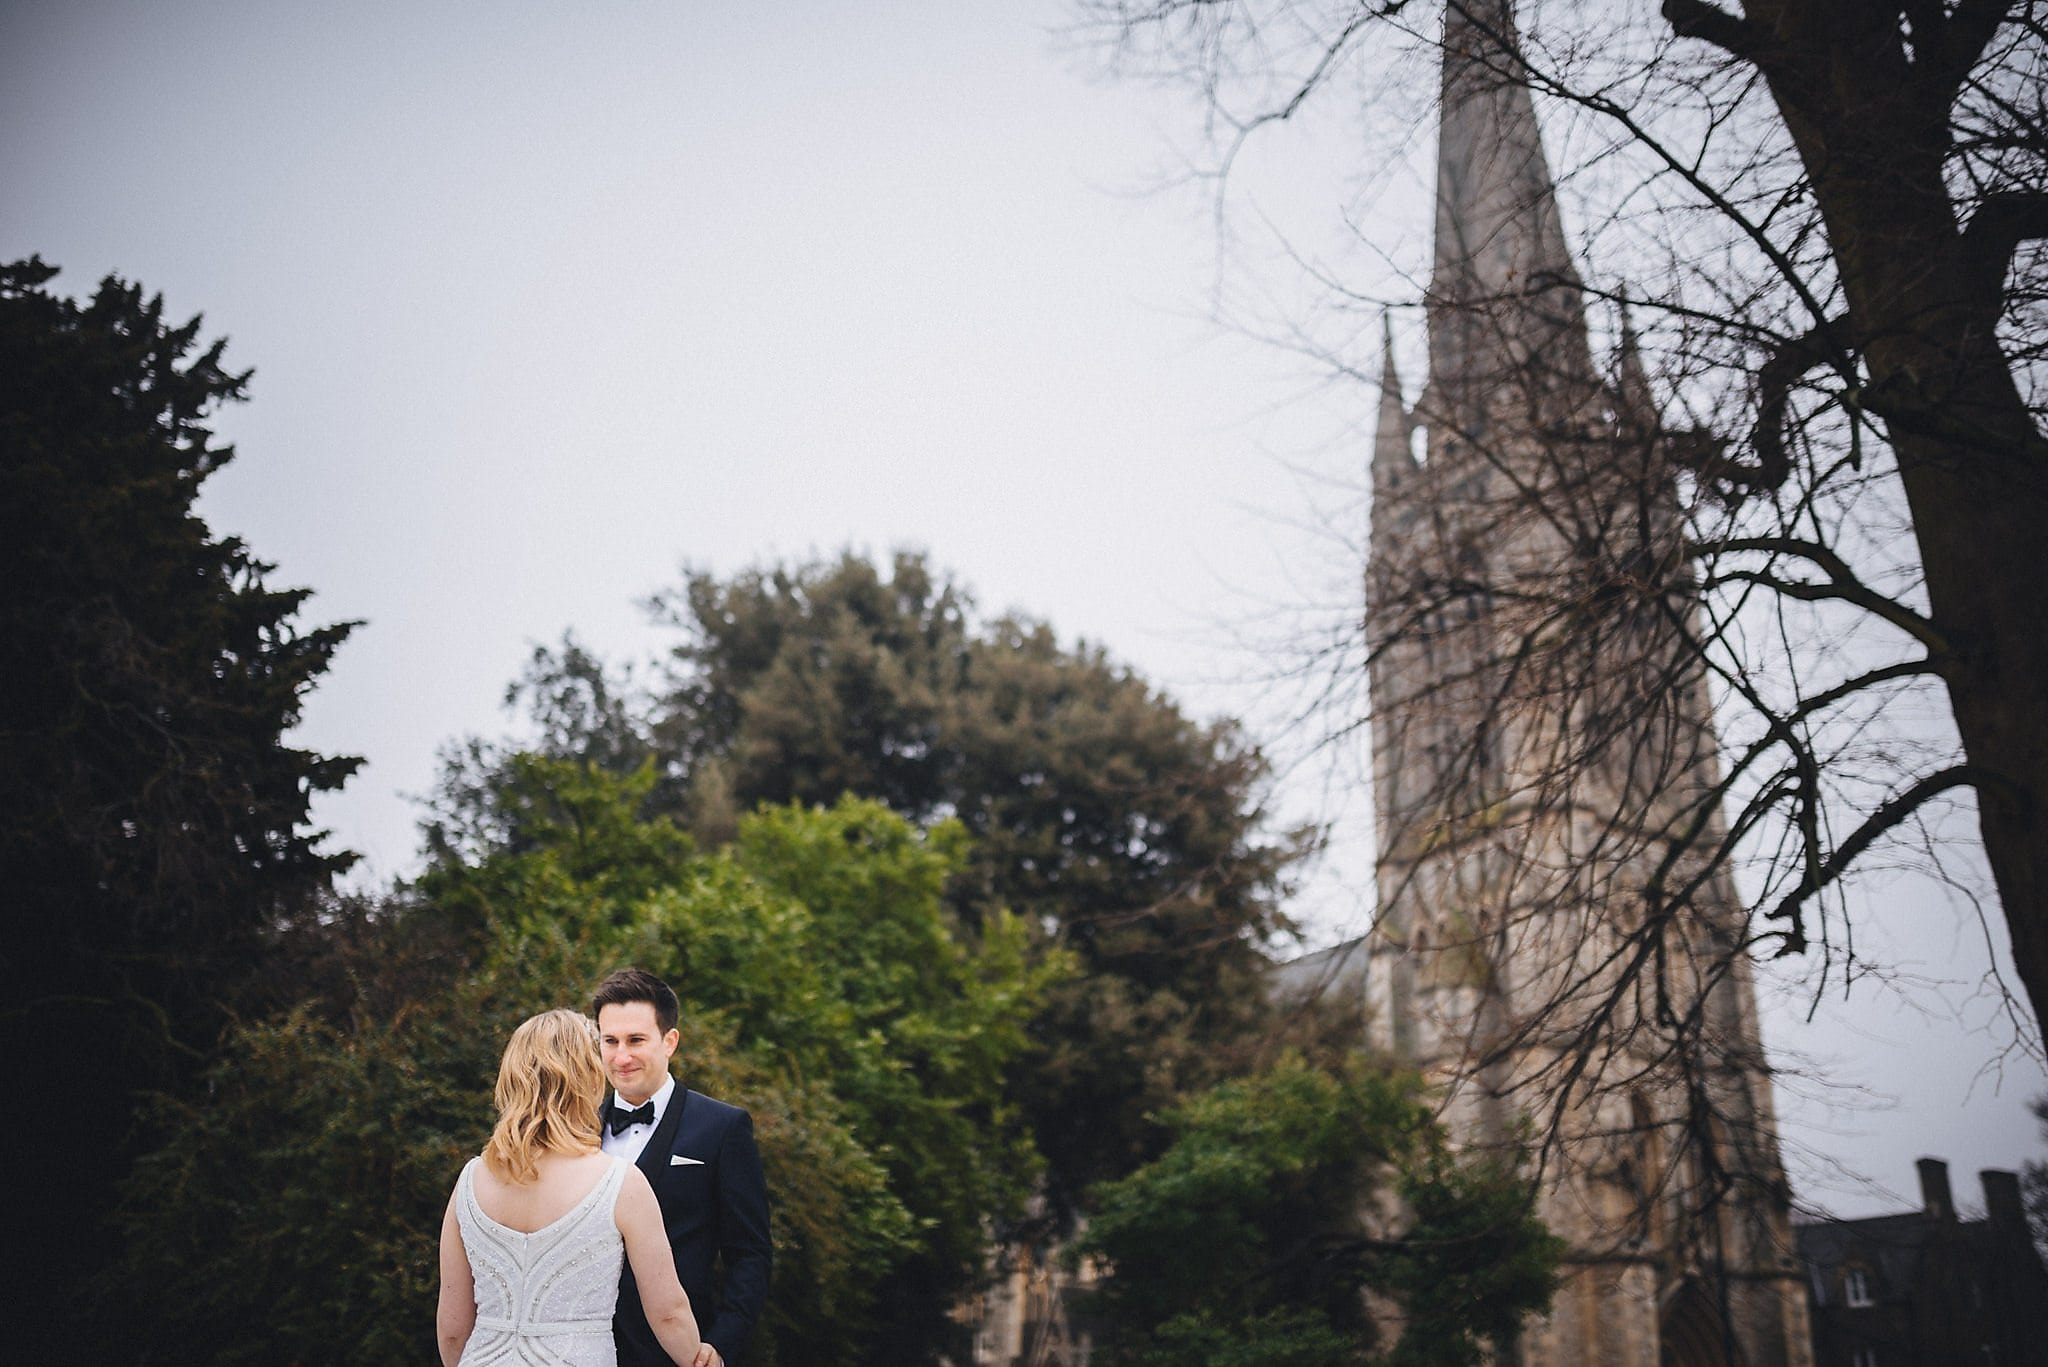 Bride and groom in Clissold Park with church in background